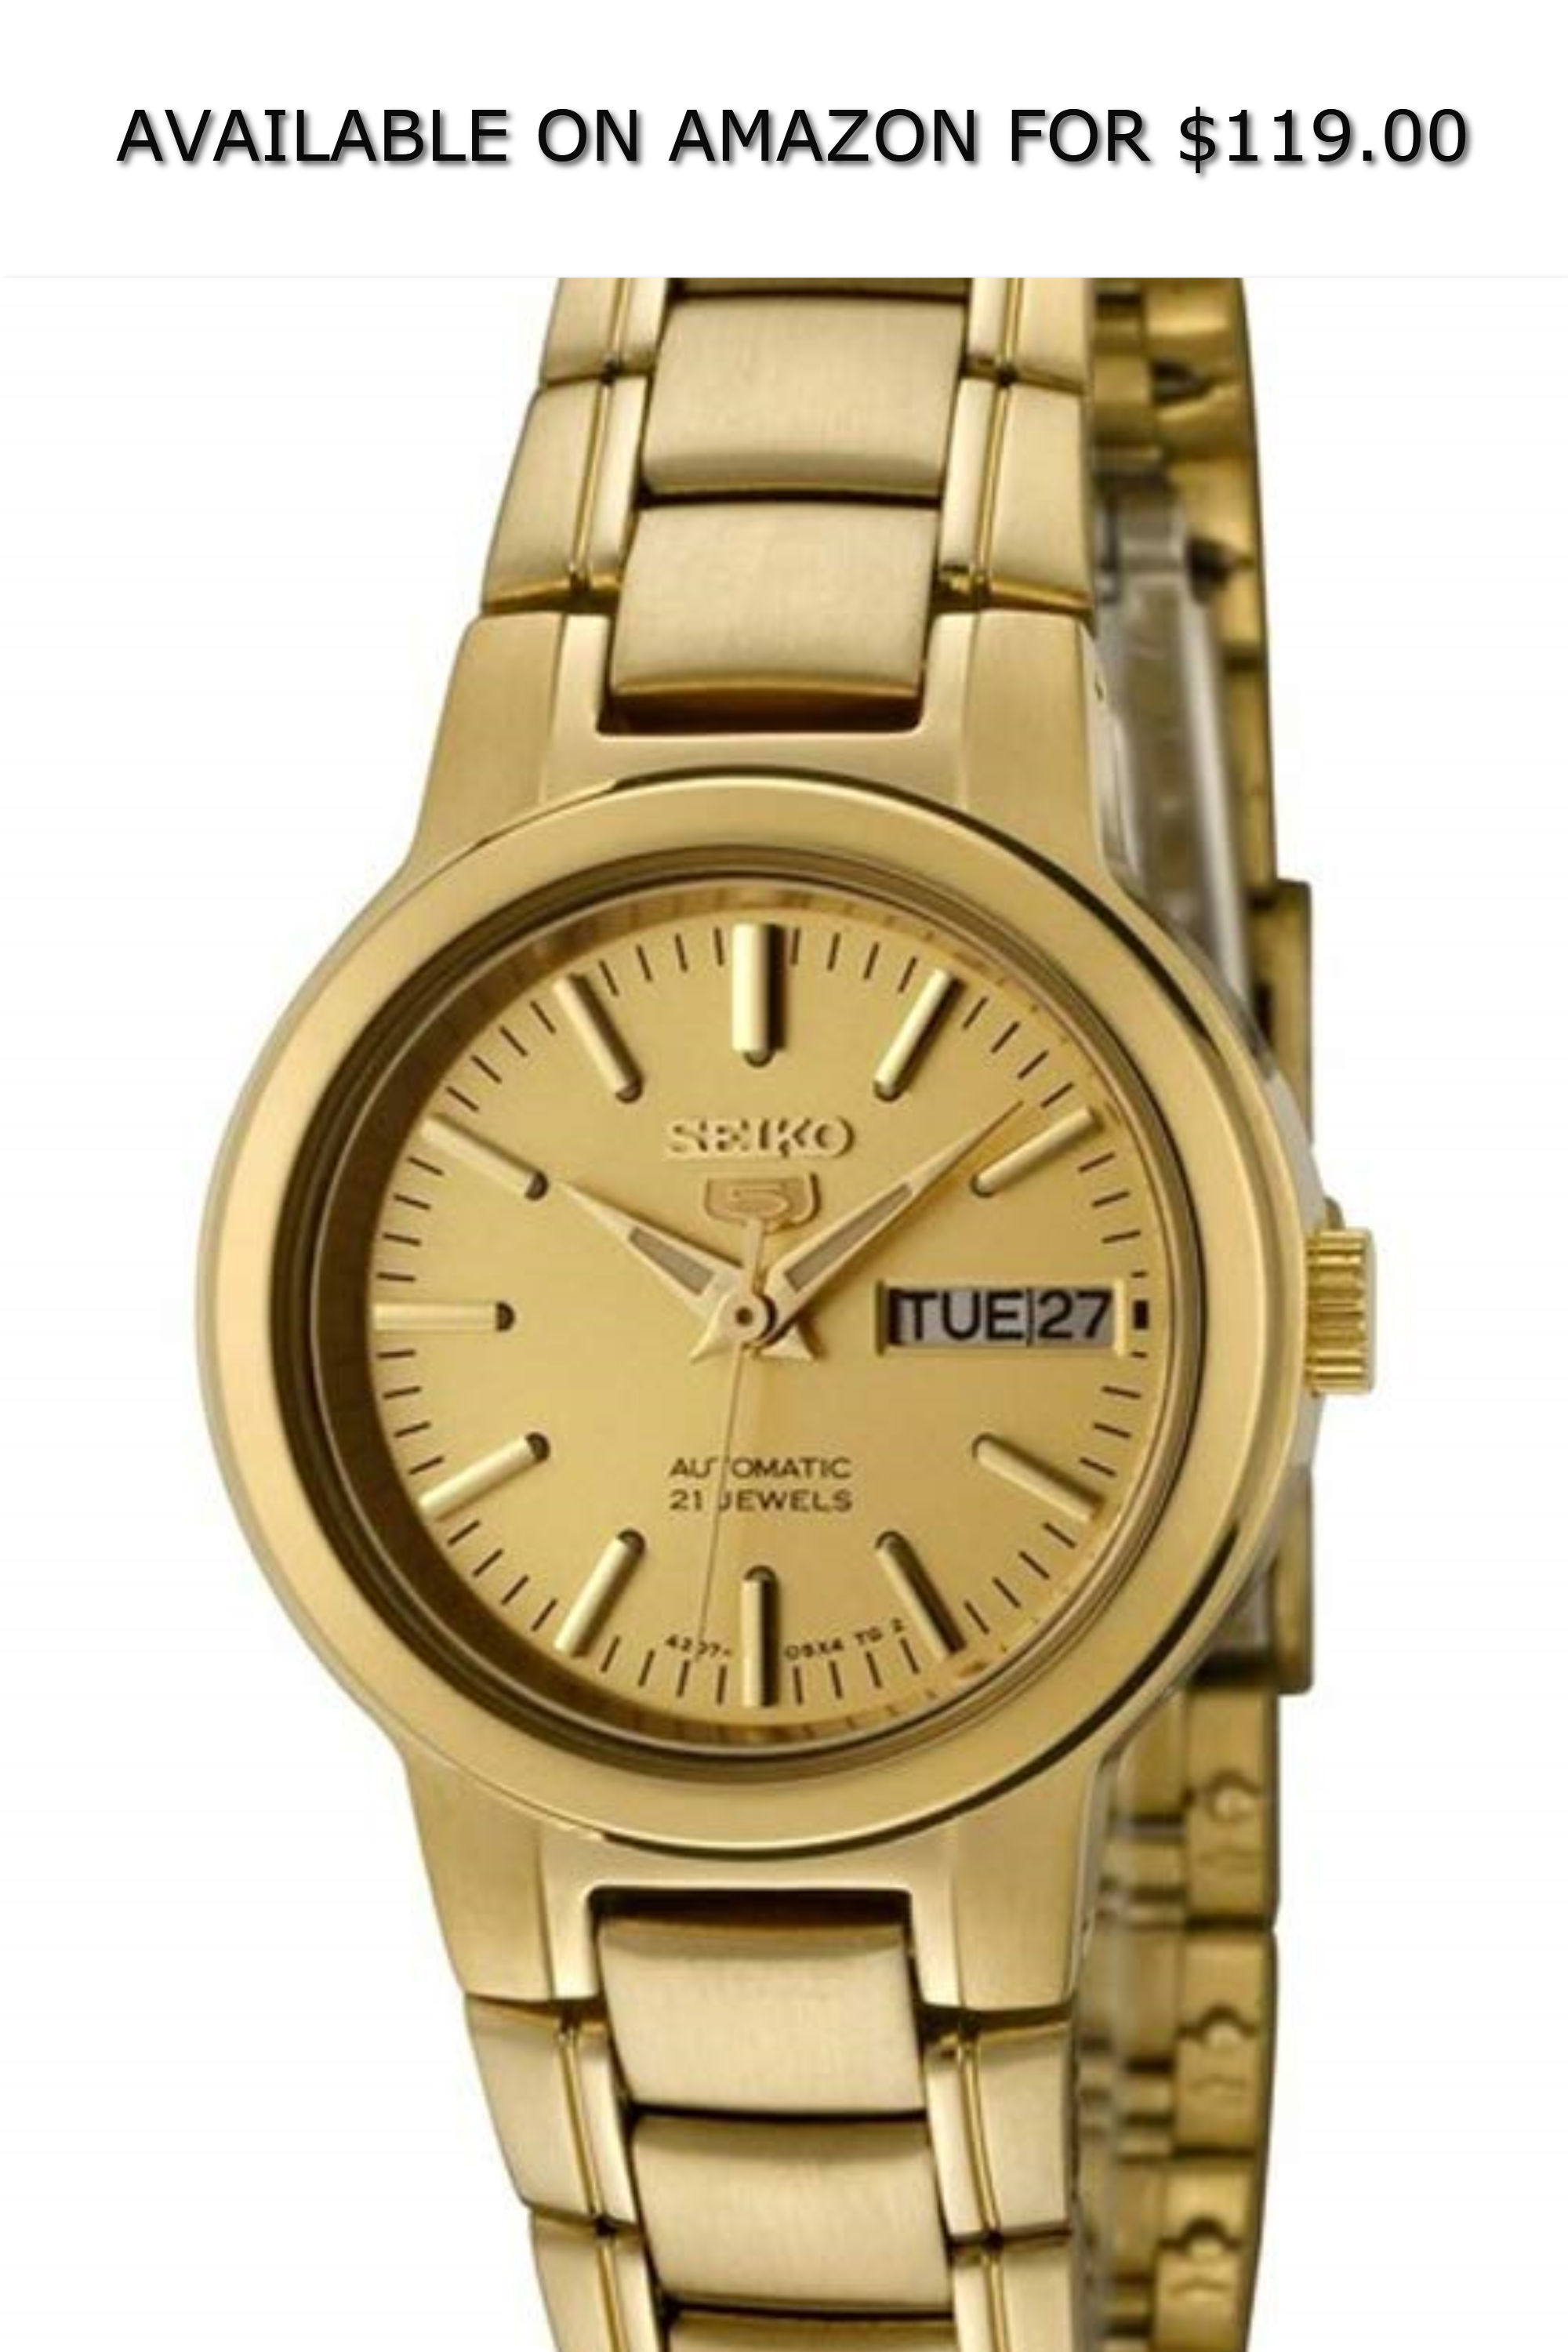 Seiko 5 Syme46k1 Women S Gold Tone Self Winding Automatic Watch Available On Amazon For 119 00 Seiko 5 Gold Watches Women Girls Watches Rose Gold Watch